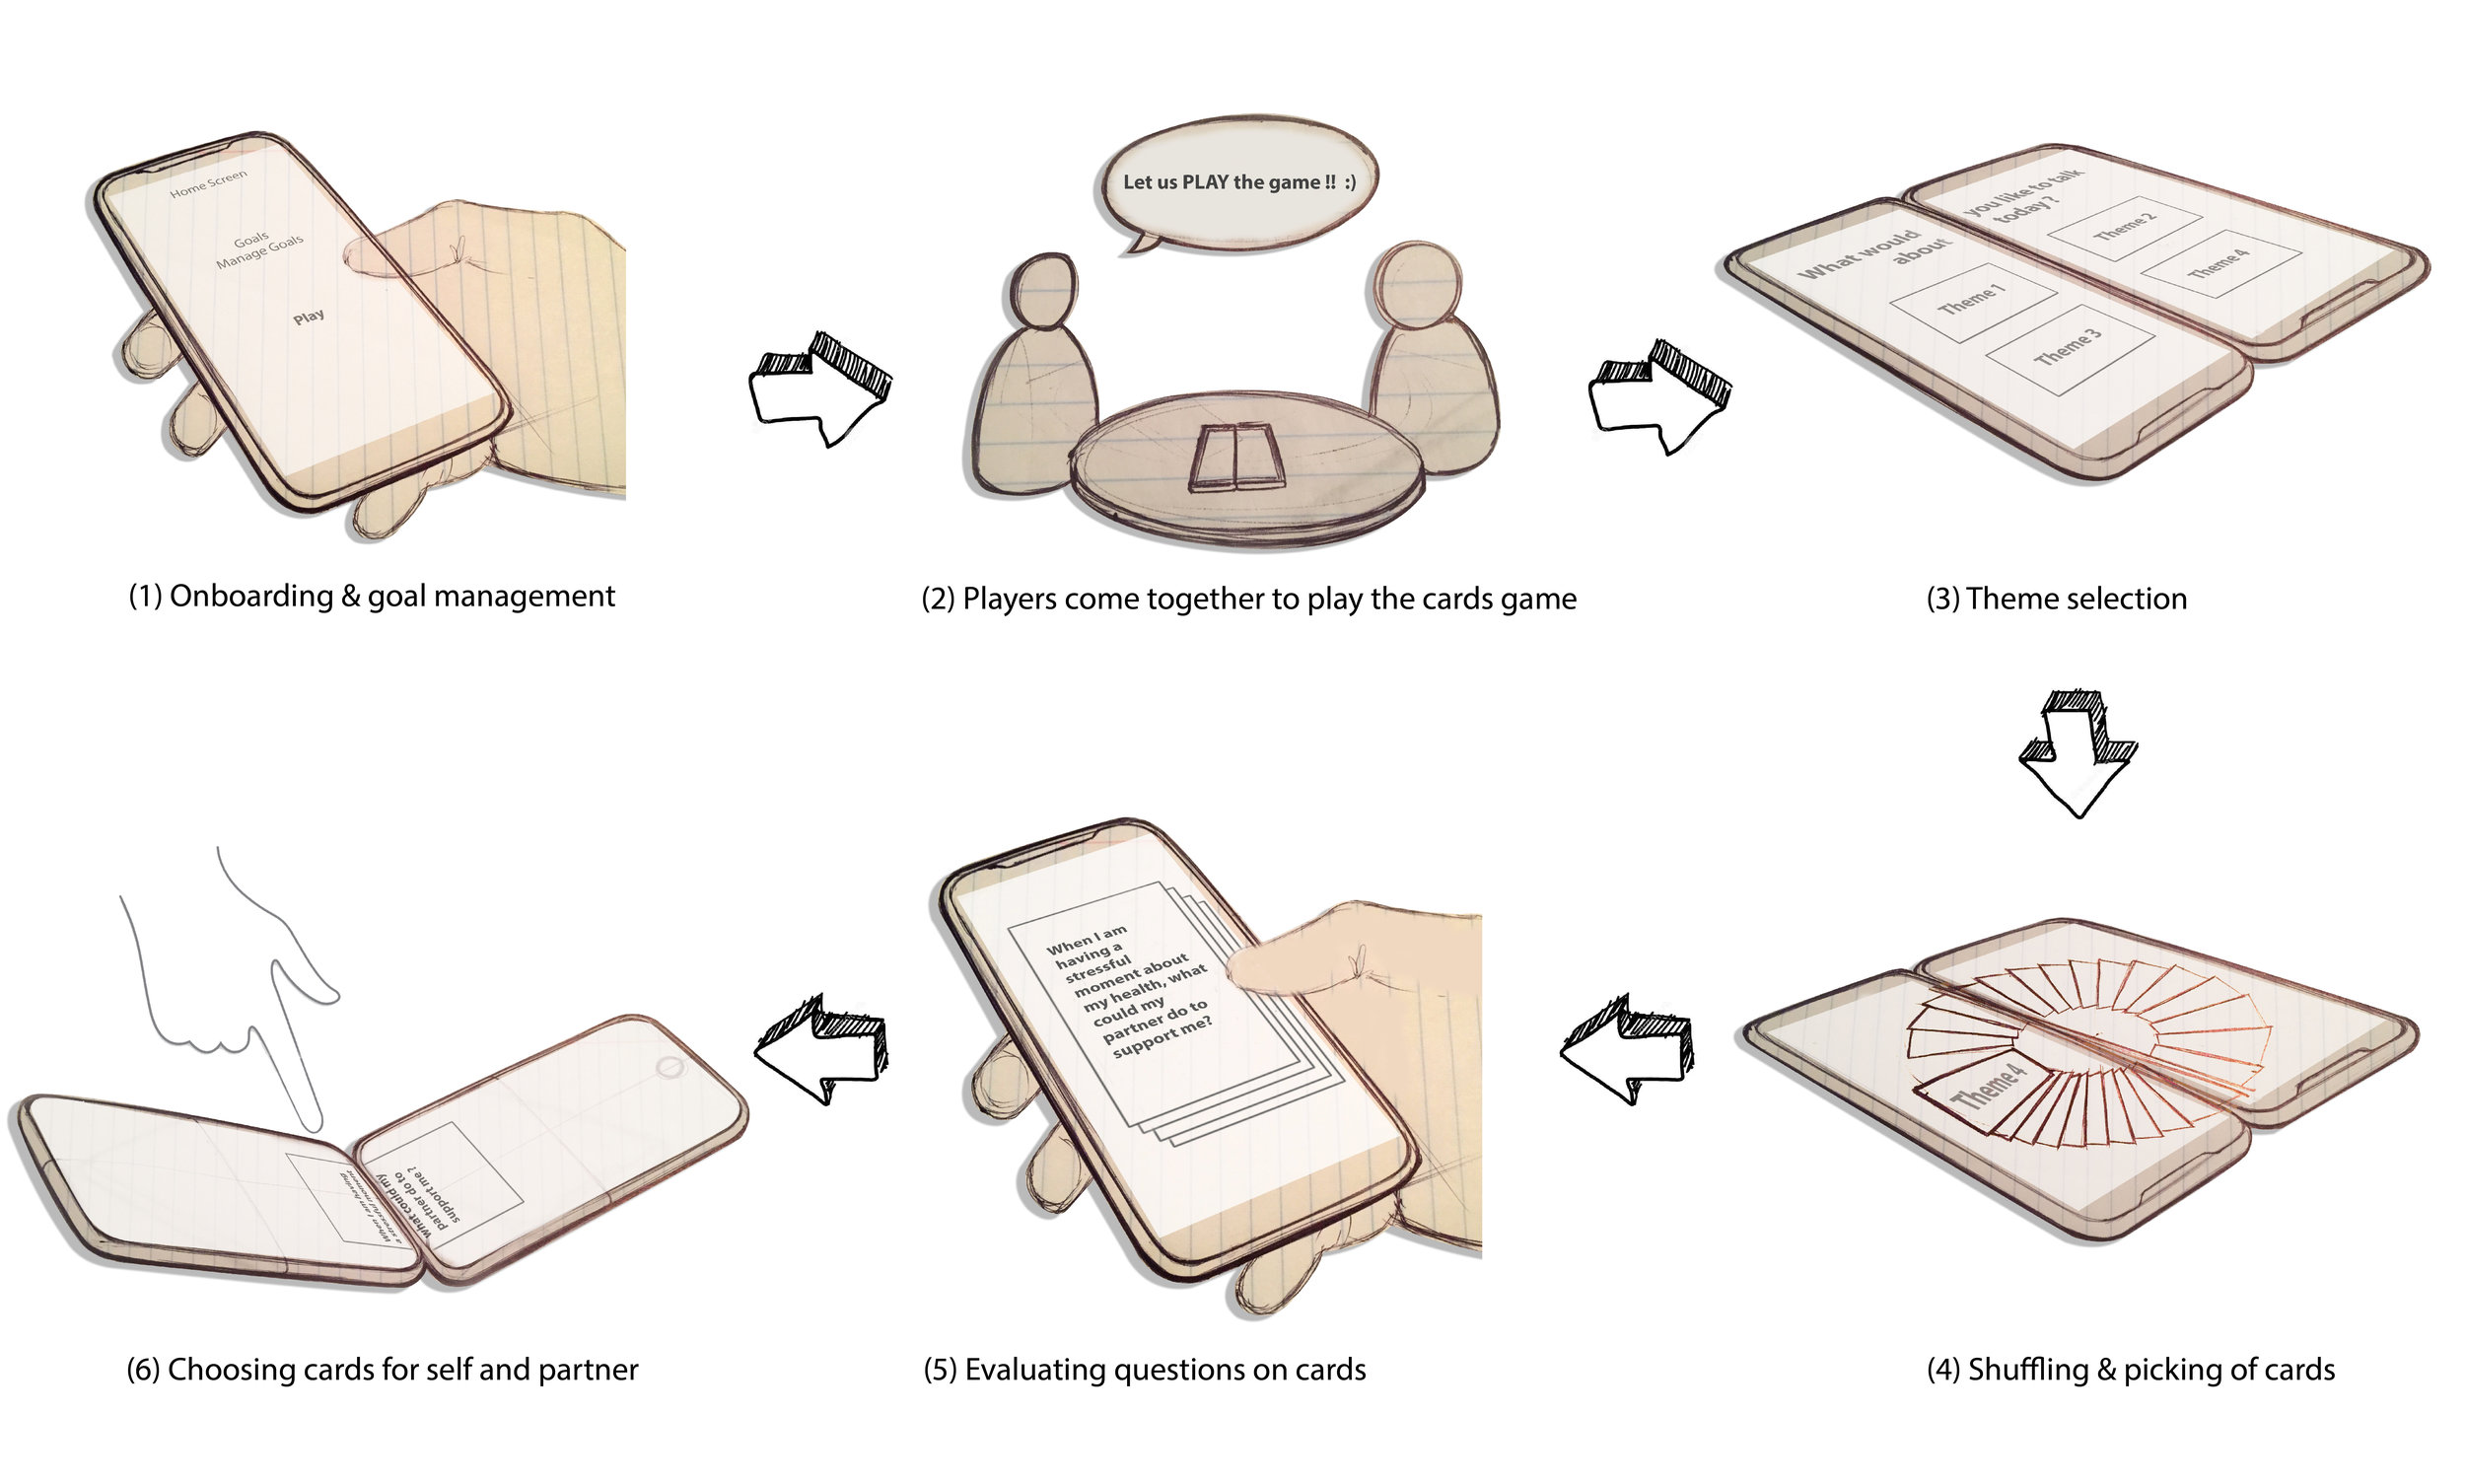 Final concept  : Digital Communication cards for patients and supporters to better understand each other's needs and co-work in finding solutions.